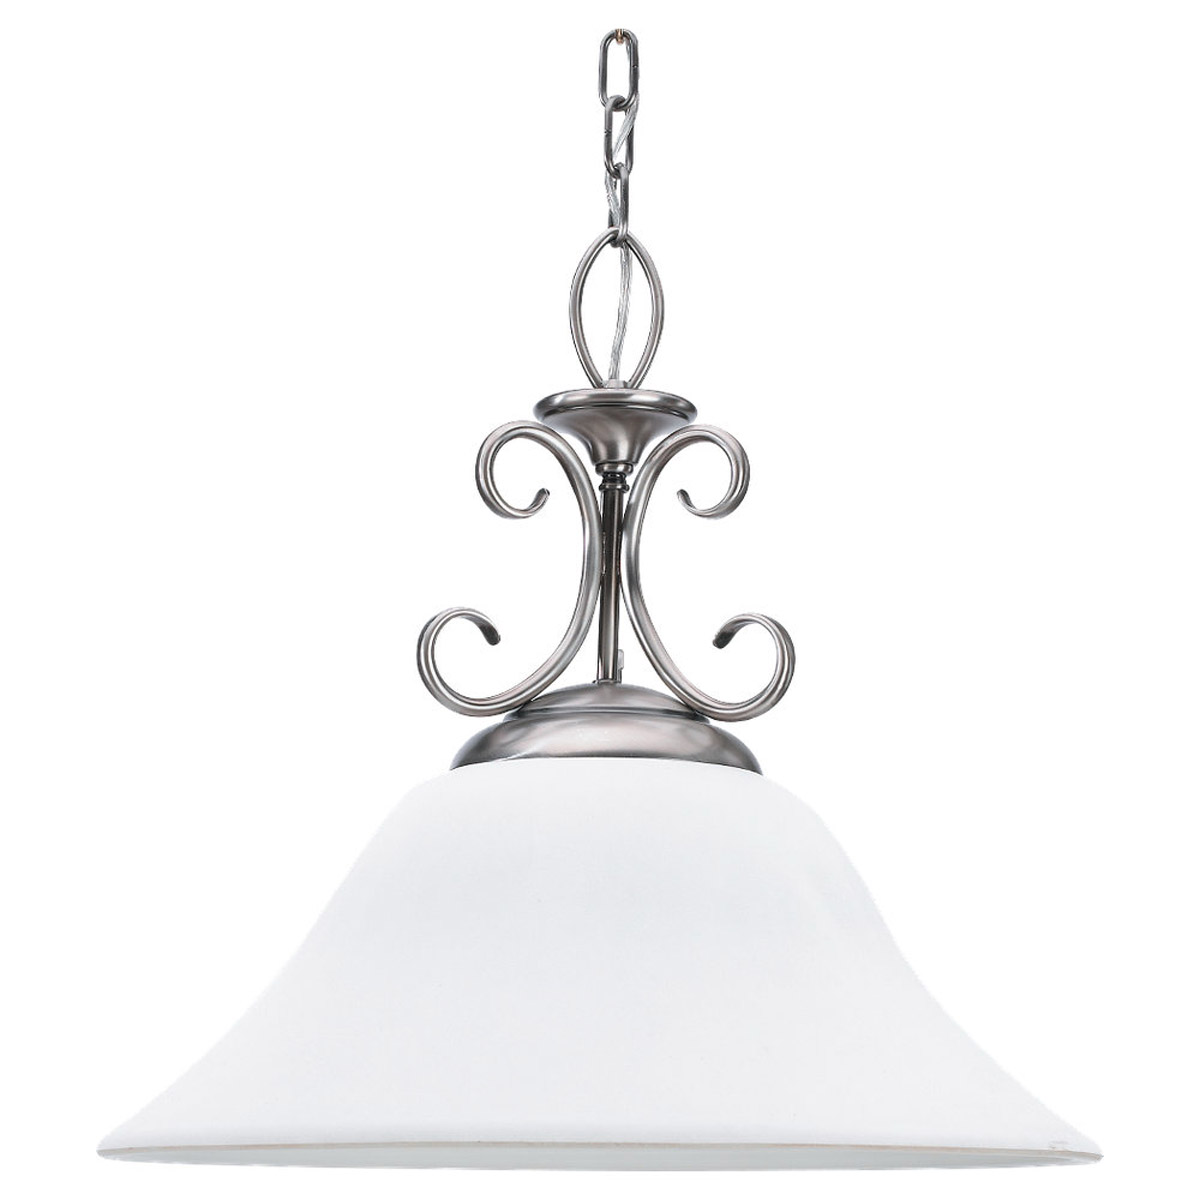 Sea Gull Lighting Montclaire 1 Light Pendant in Antique Brushed Nickel 65105-965 photo